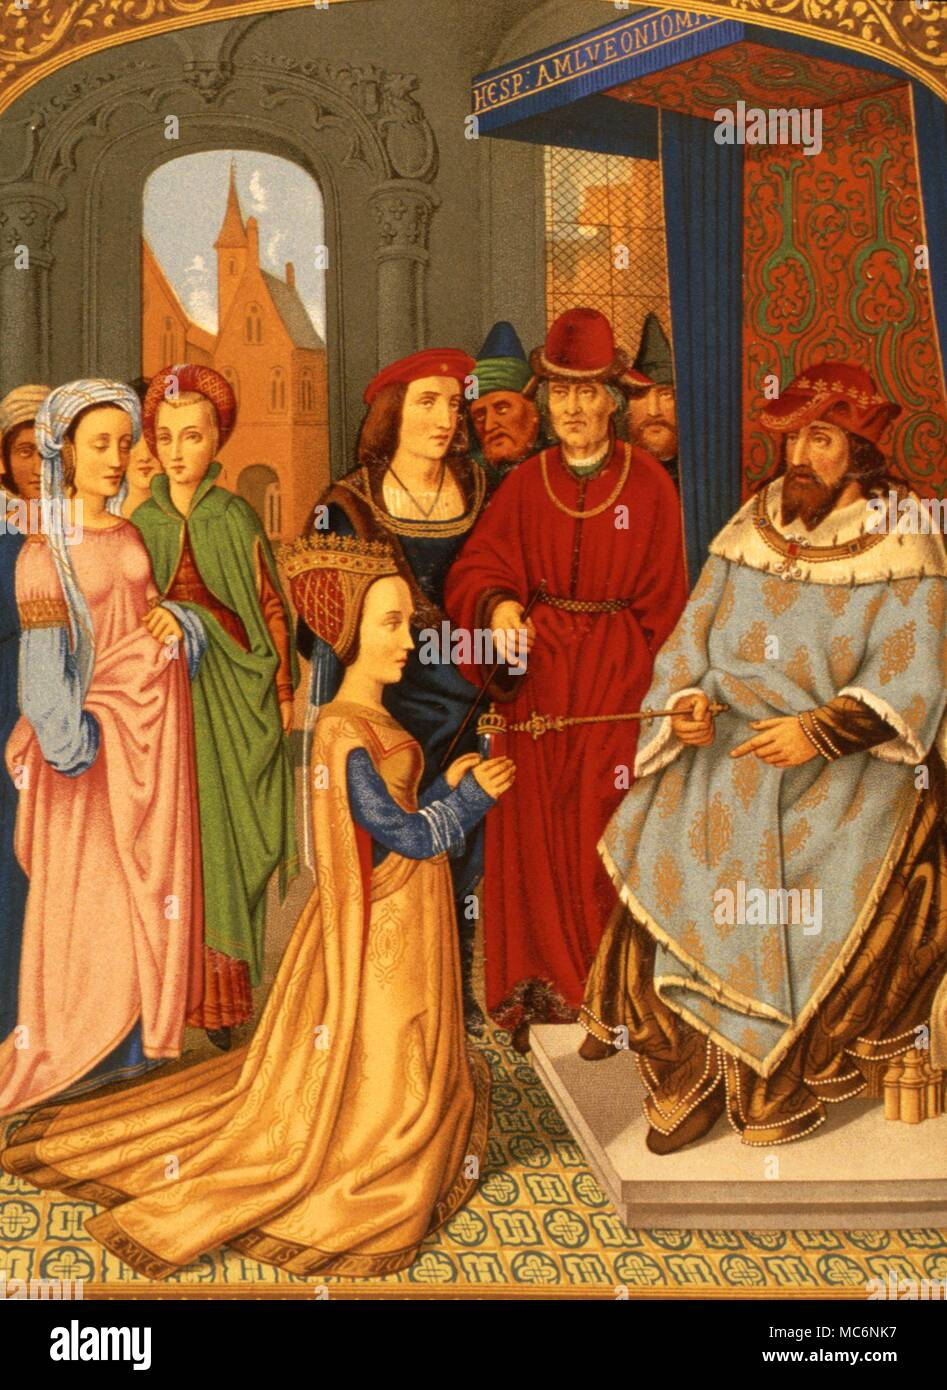 Mediaeval image depicting the reception of the Queen of Sheba by King Solomon. Chromolithographic  facsimile from the breviary of Cardinal Grimandi, attributed to Memling.  From the 1876 ed. of Lacroix, 'Middle Ages'. - Stock Image